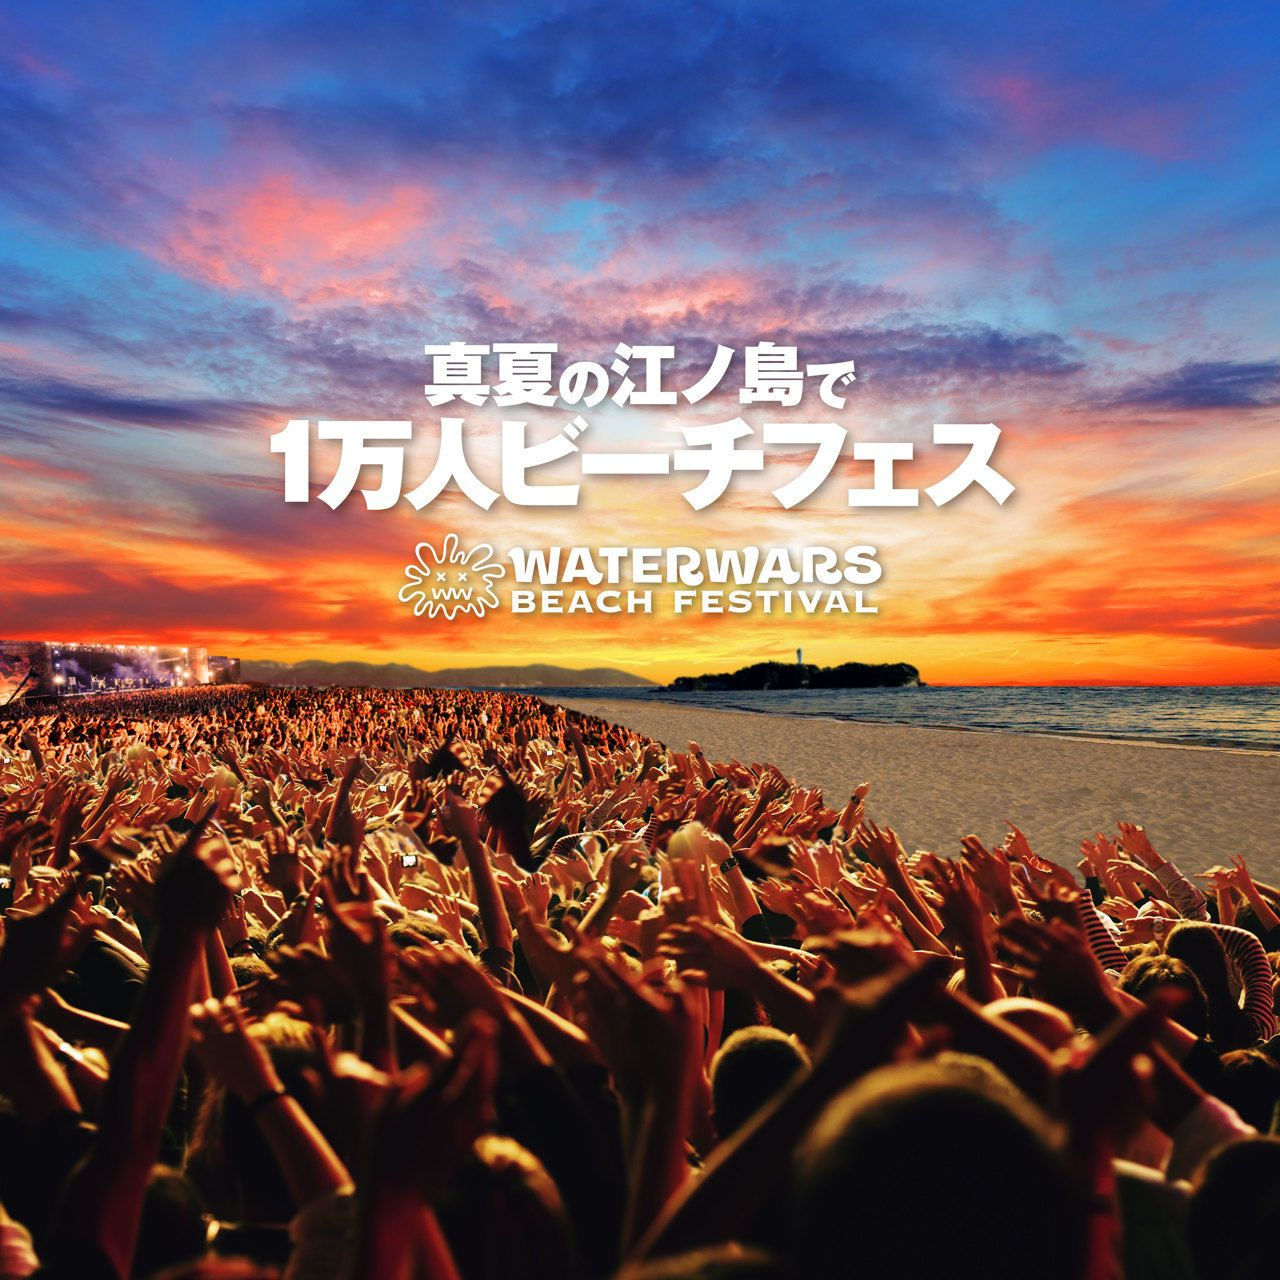 WATERWARS BEACH FESTIVAL 2017 ENOSHIMA